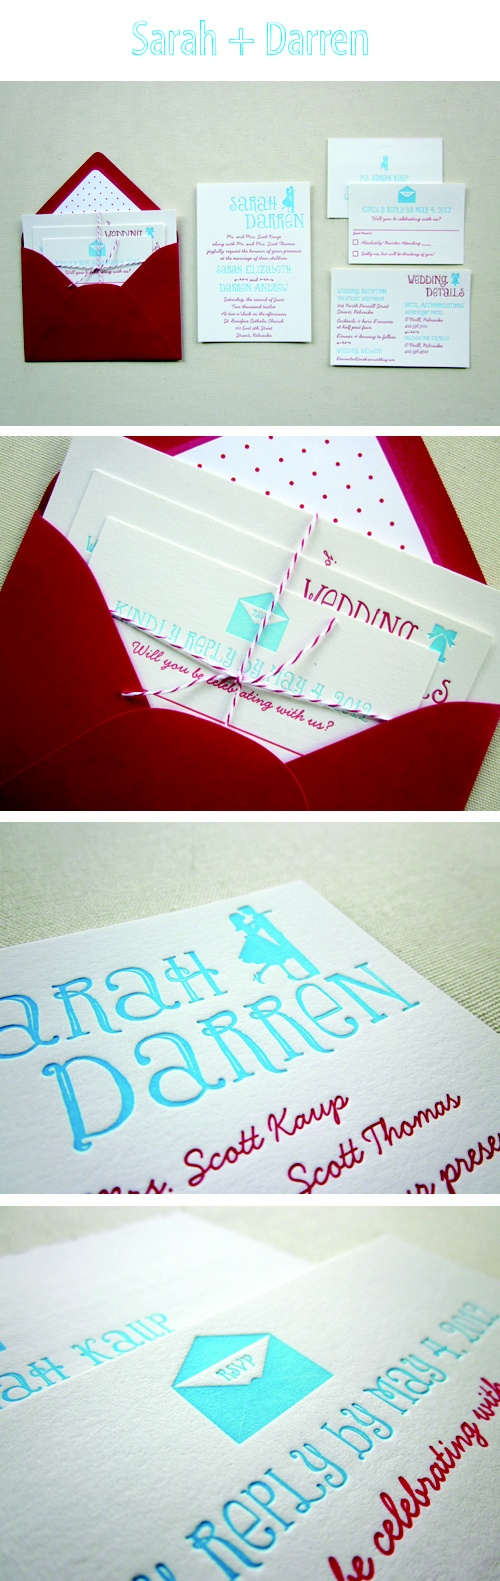 371 best Wedding Invitation + Stationery images on Pinterest ...